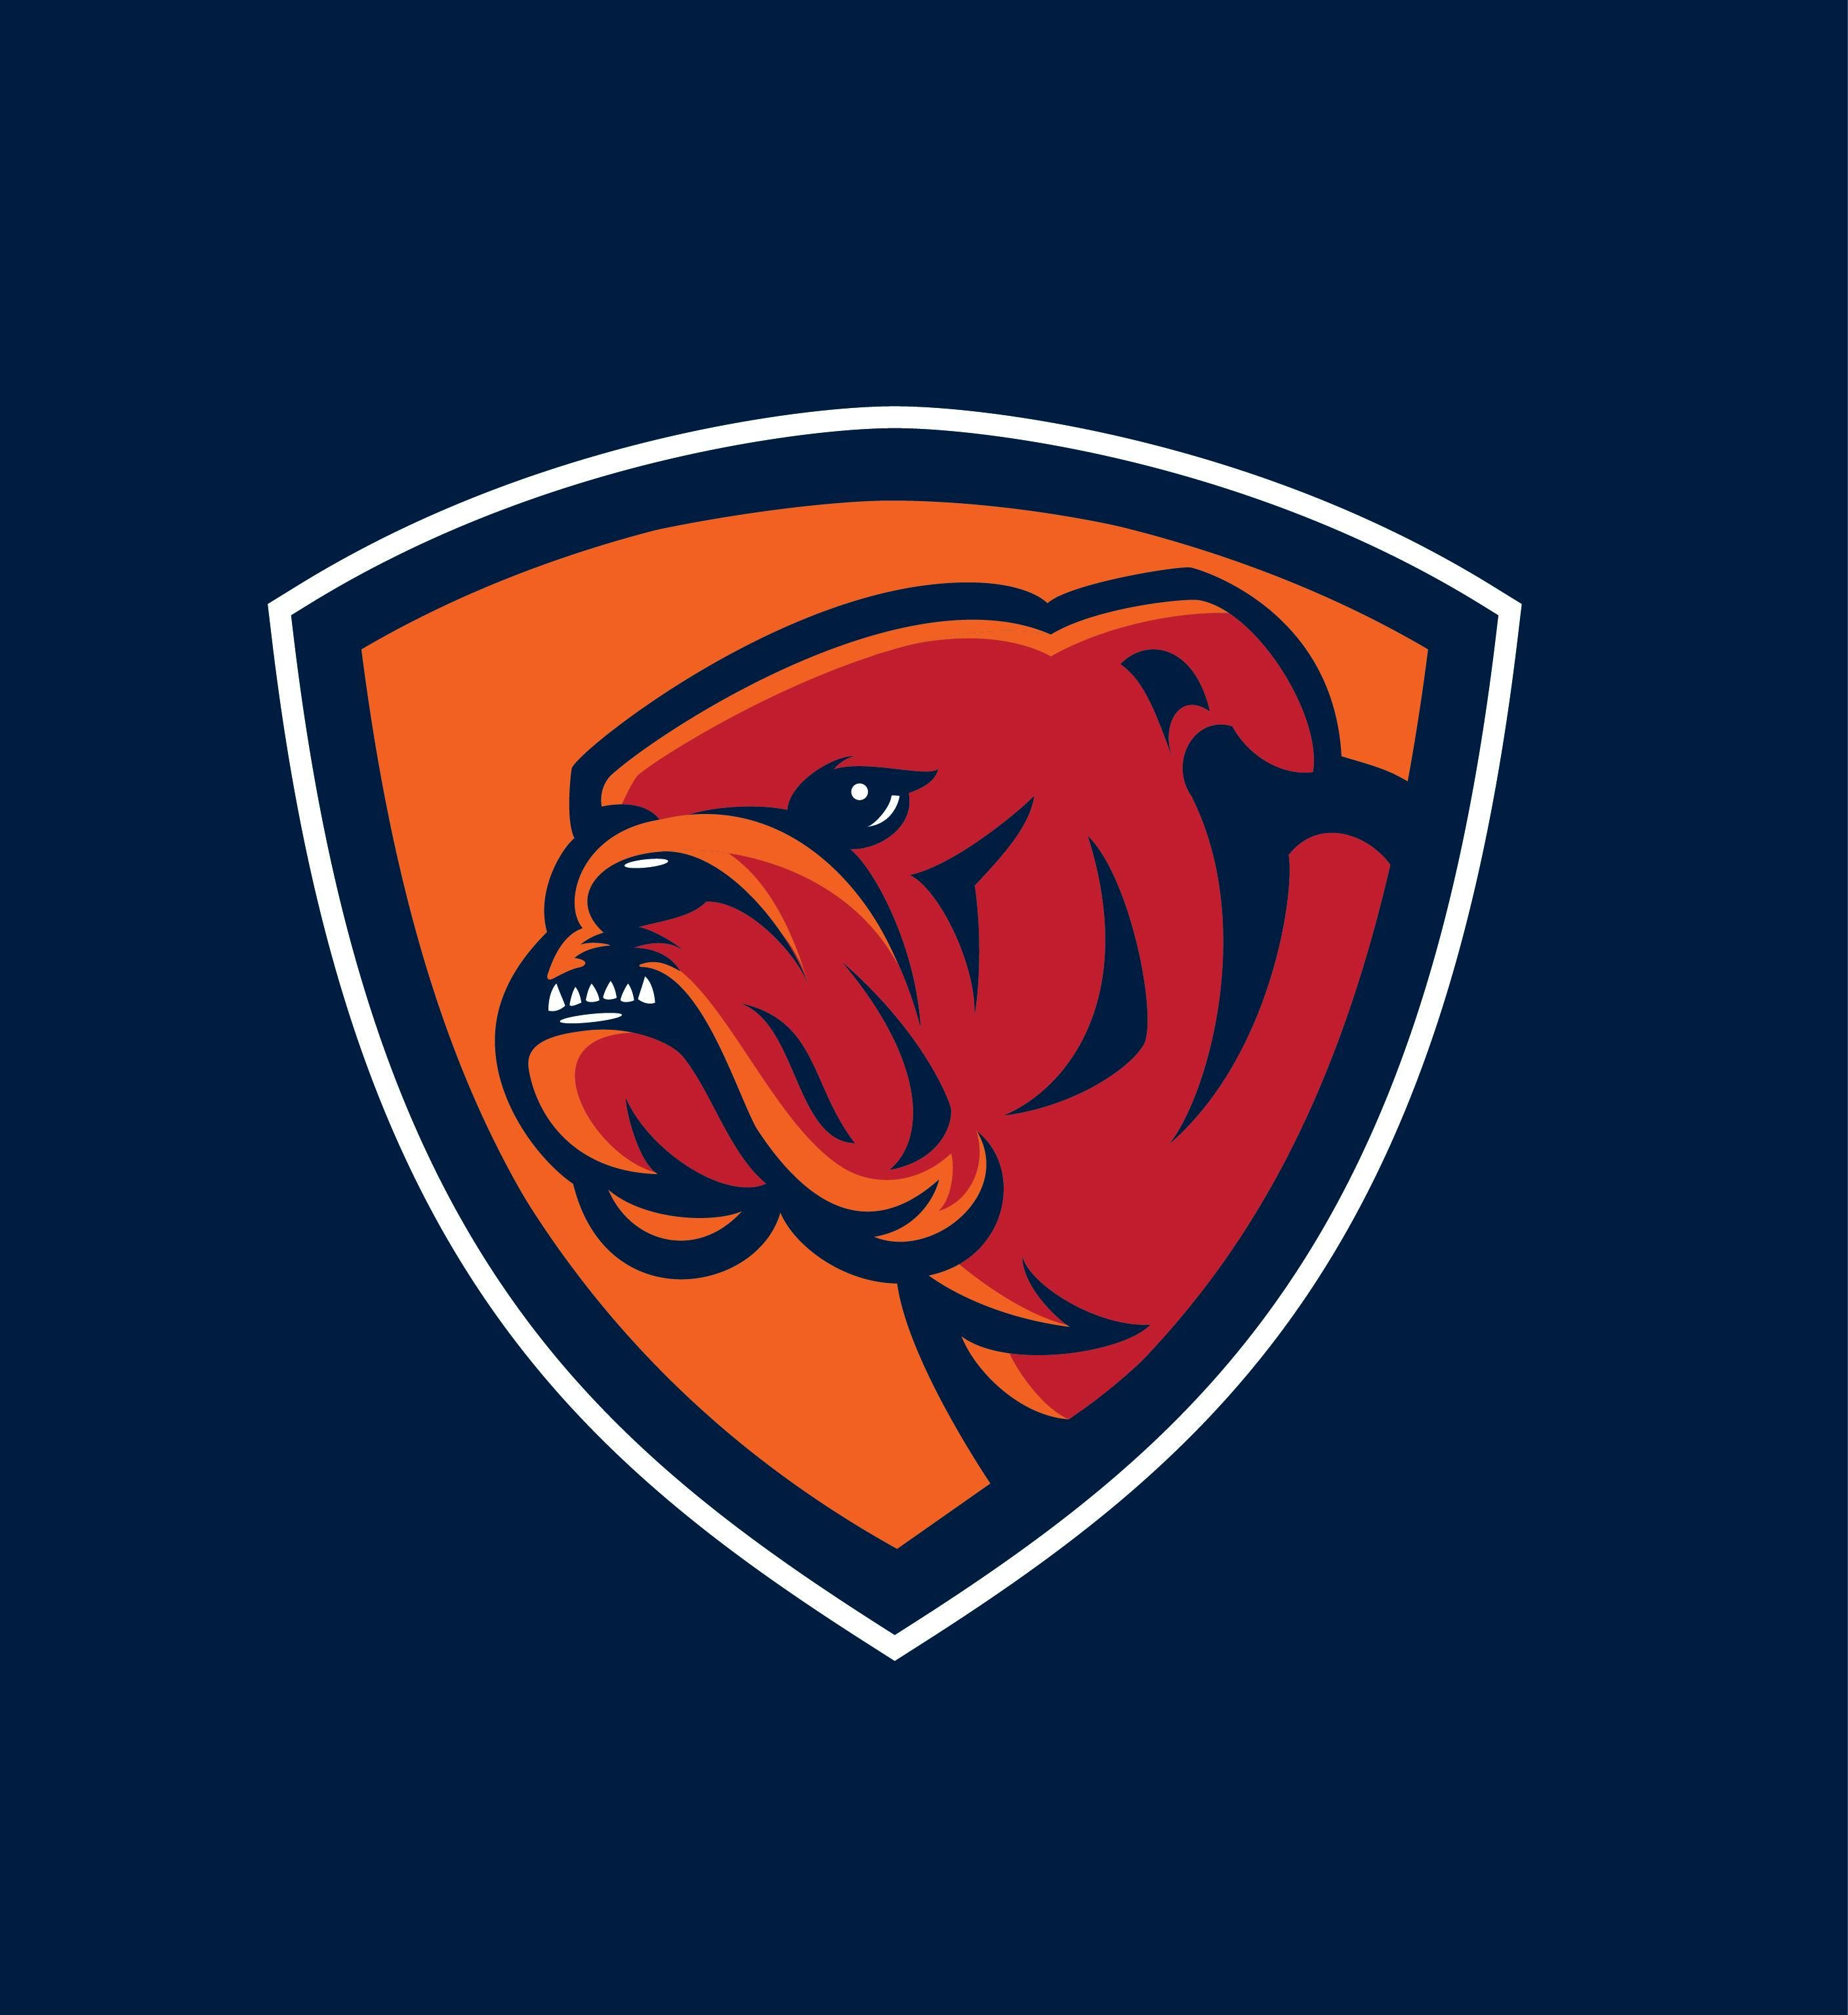 How To Design Sports Logos Create Your Own Team Mascot